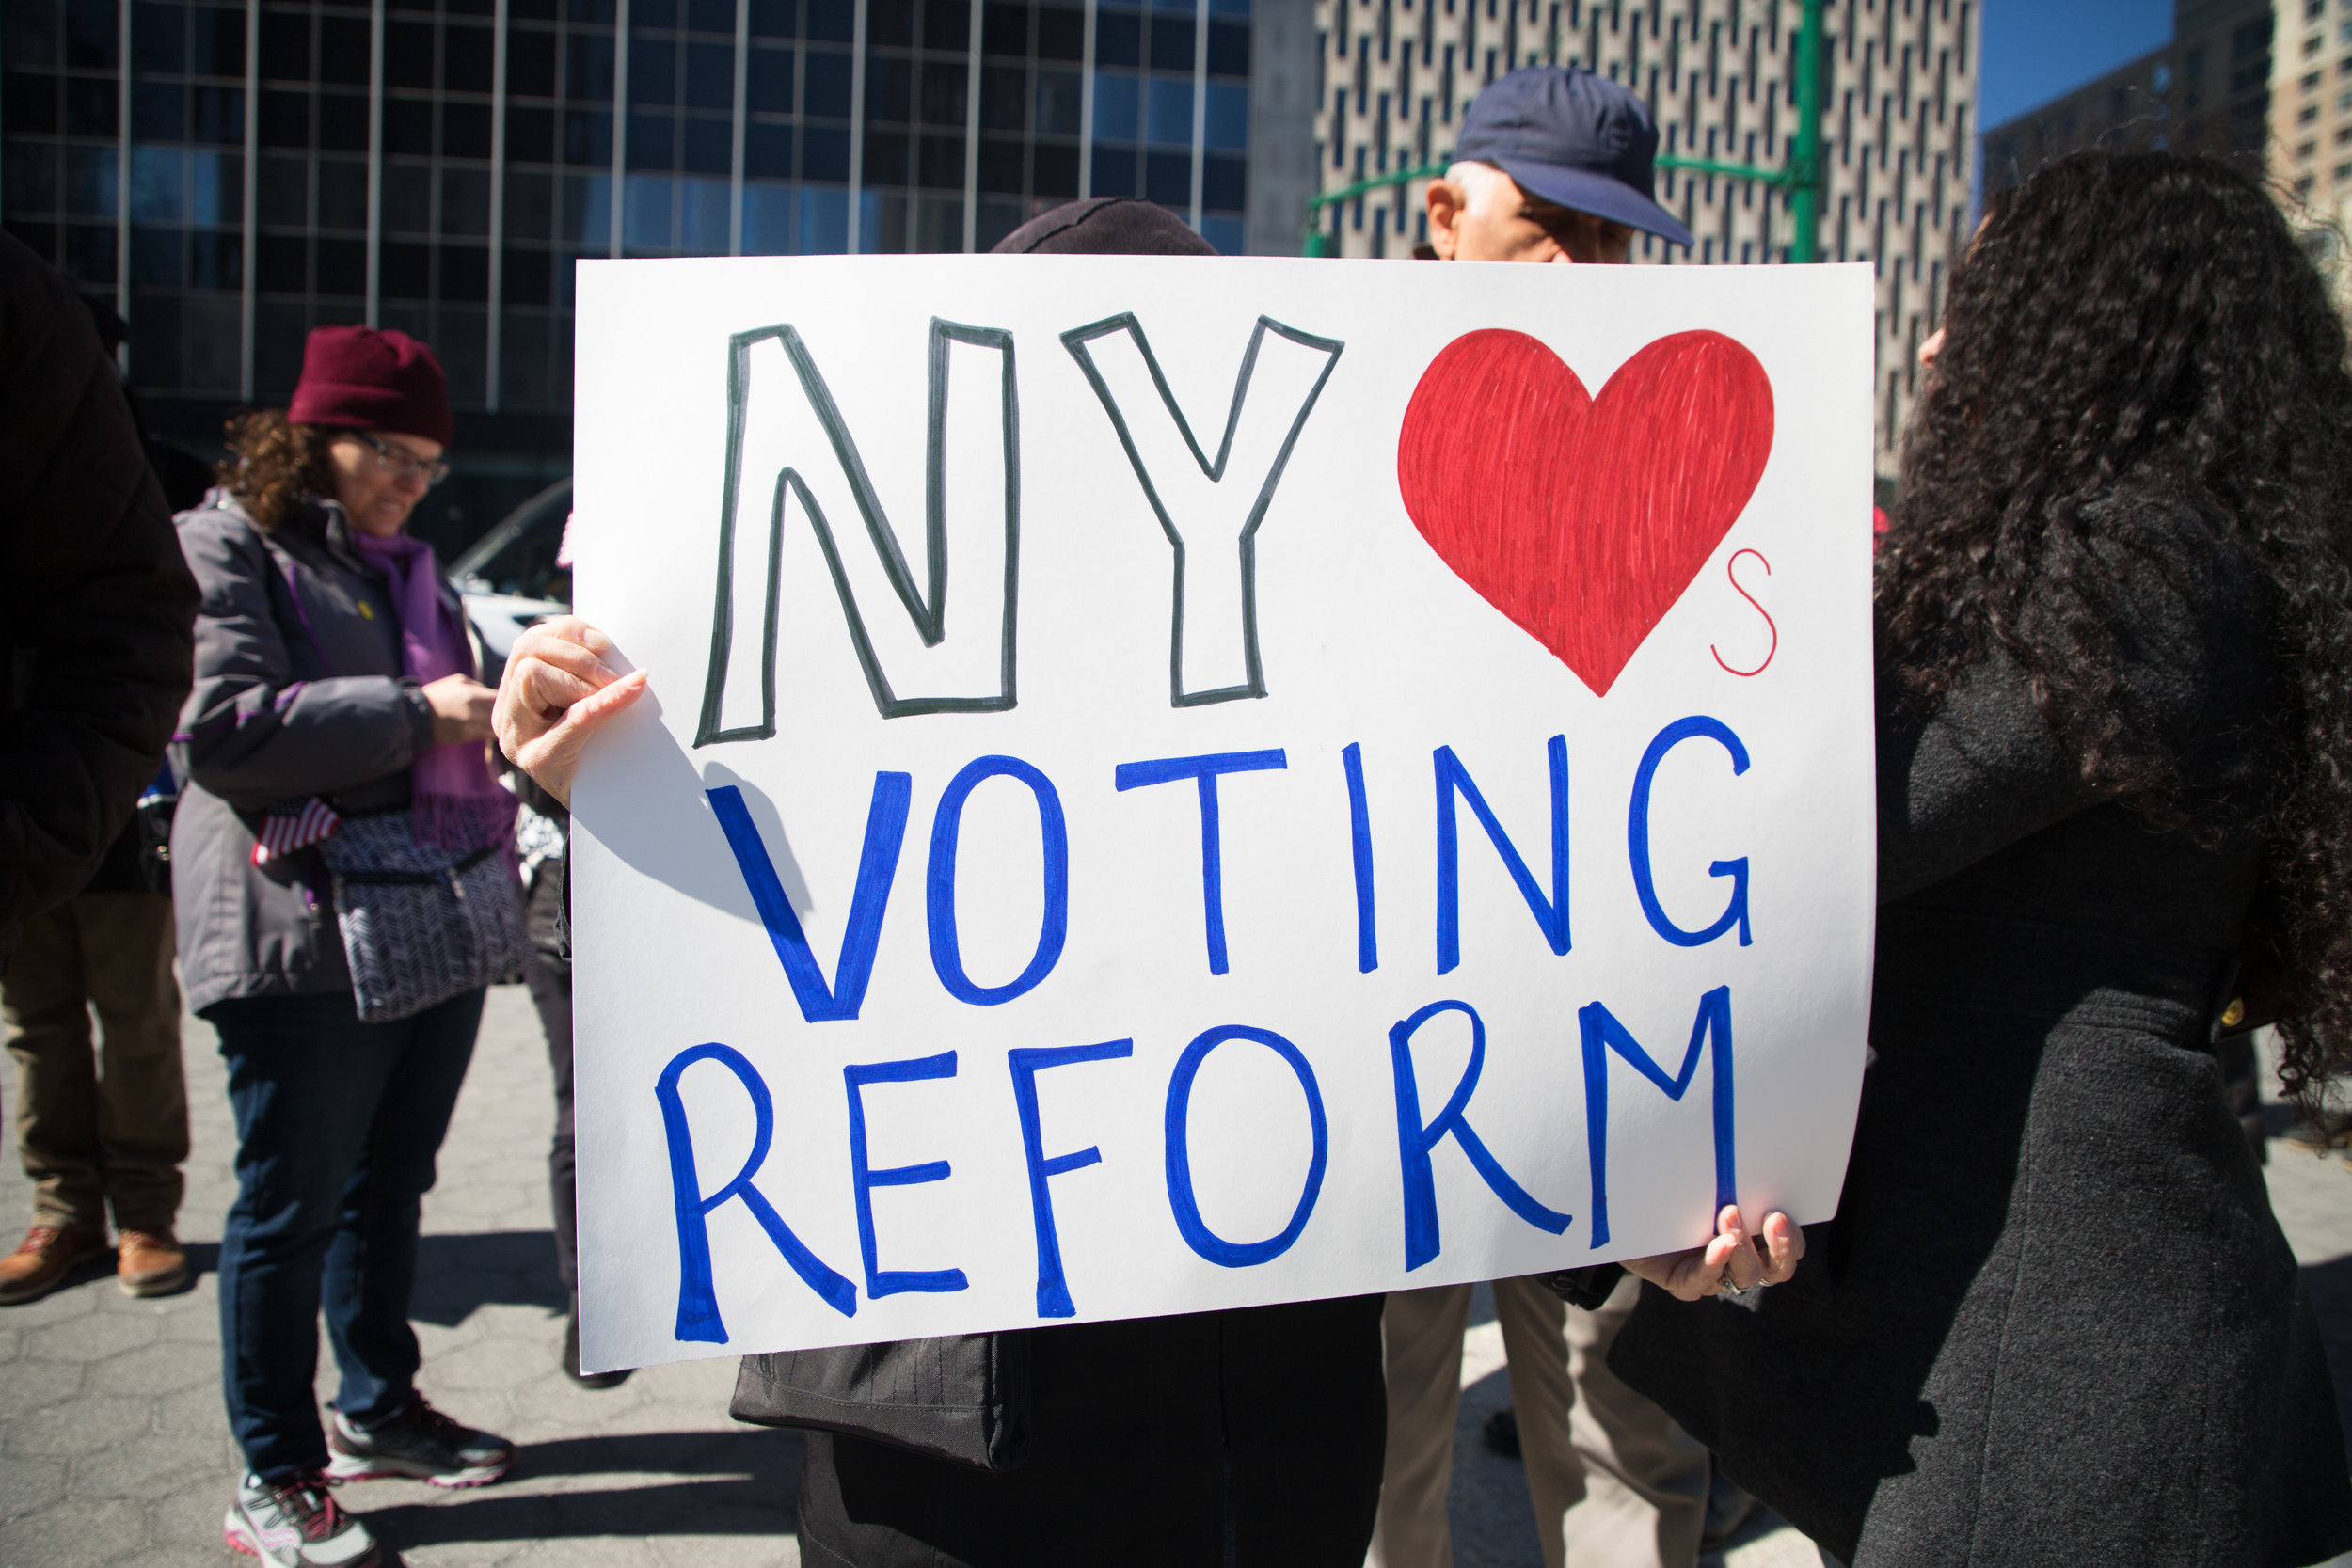 In a Rally for Ealry Voting, activists and elected officials rallied for New York to change it's laws and voting registration process. 37 states in the country have early voting which allows for those who can't vote due to work, school, or child care to vote on other days leading up to elections or mail in absentee ballots.